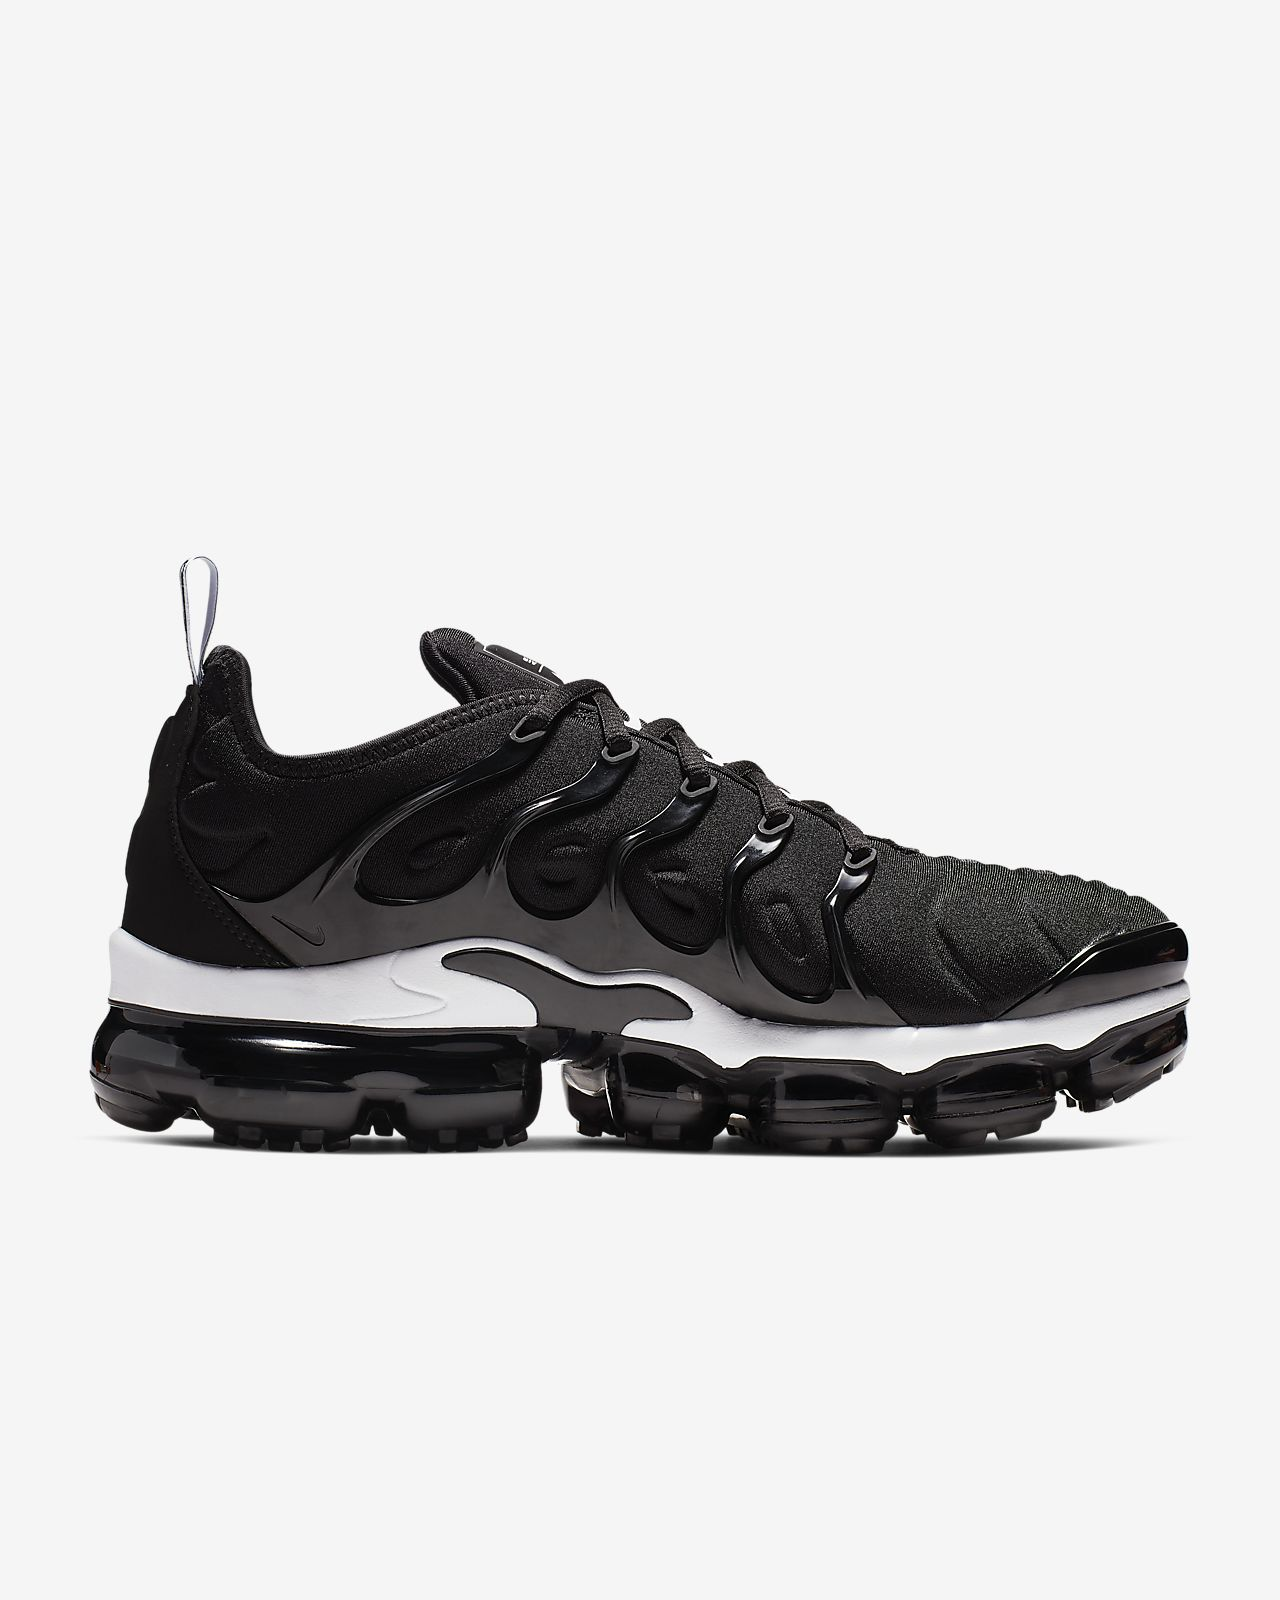 bacd6f1c098 Nike Air VaporMax Plus Men s Shoe. Nike.com GB